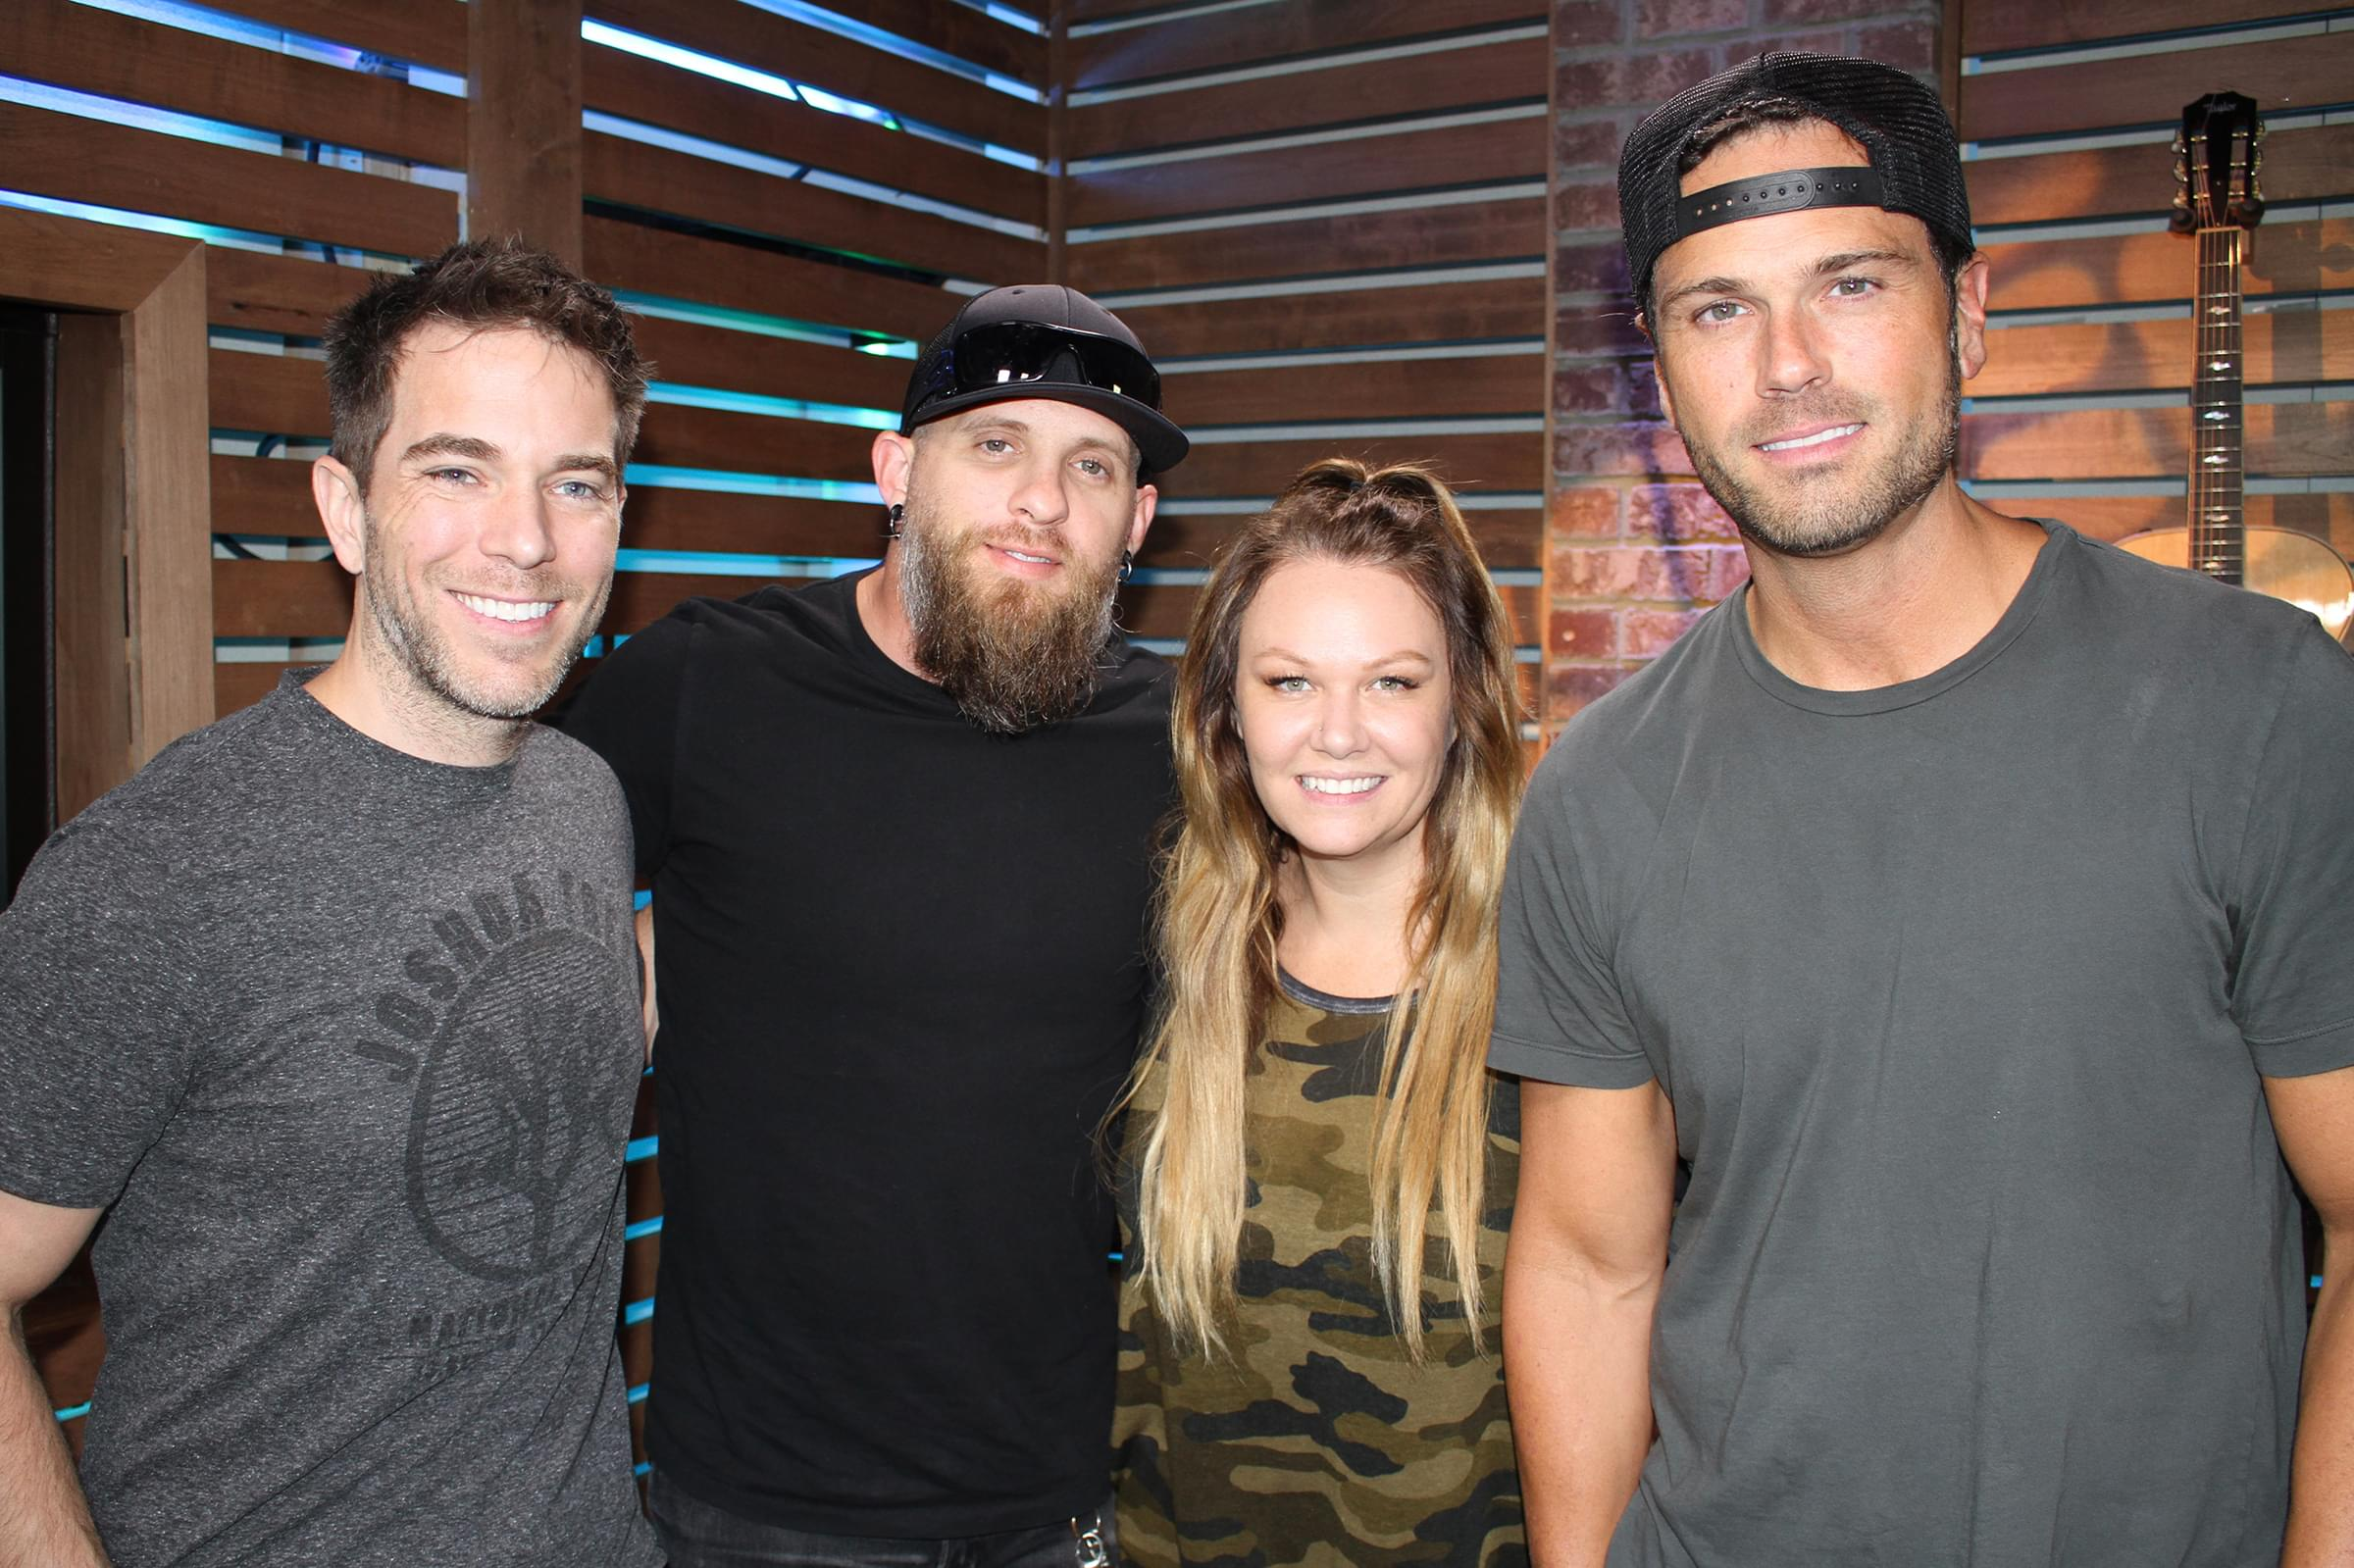 Brantley Gilbert Gives New Details About Tootsie's Birthday Bash Show, Reveals How He Got Detained at the Airport, & MORE